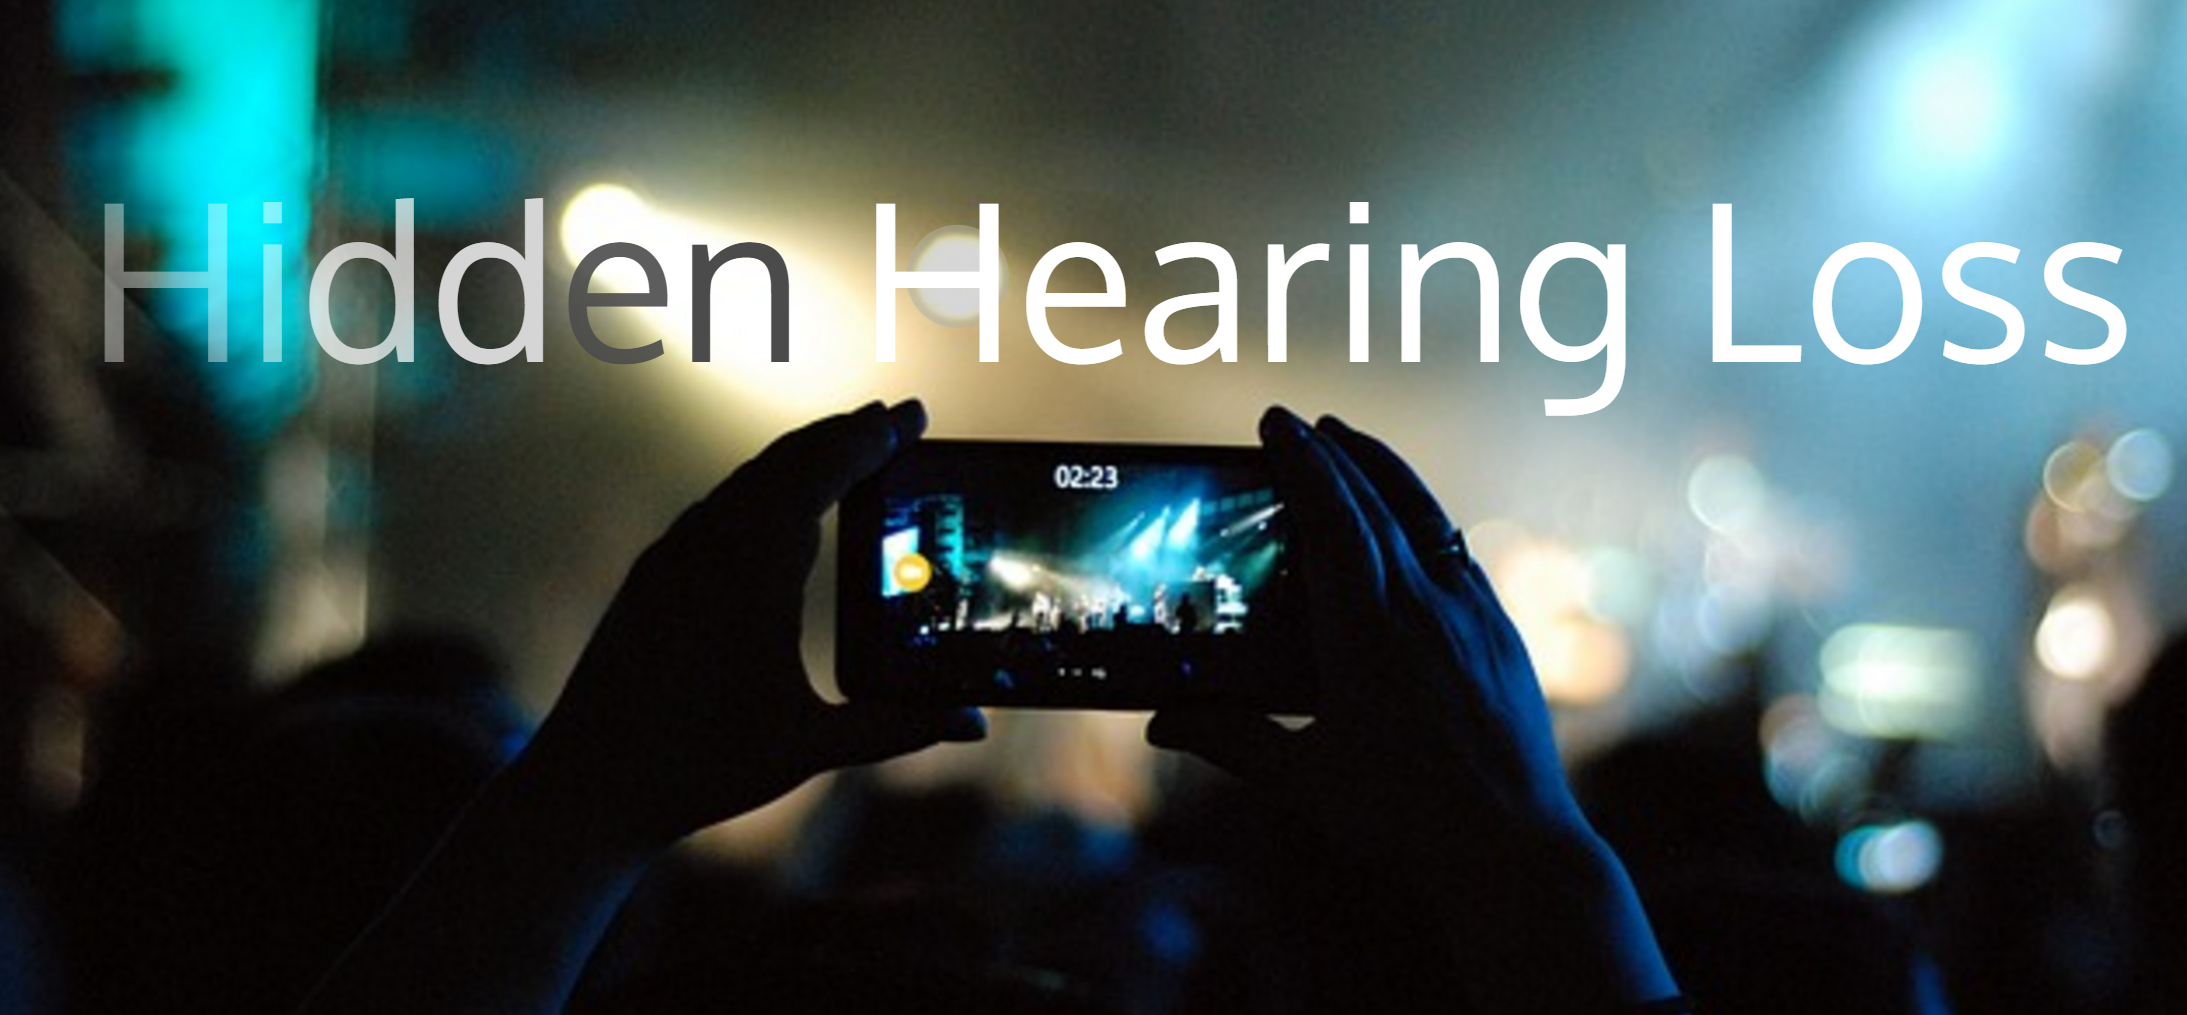 hidden hearing loss person with IPhone recording concert